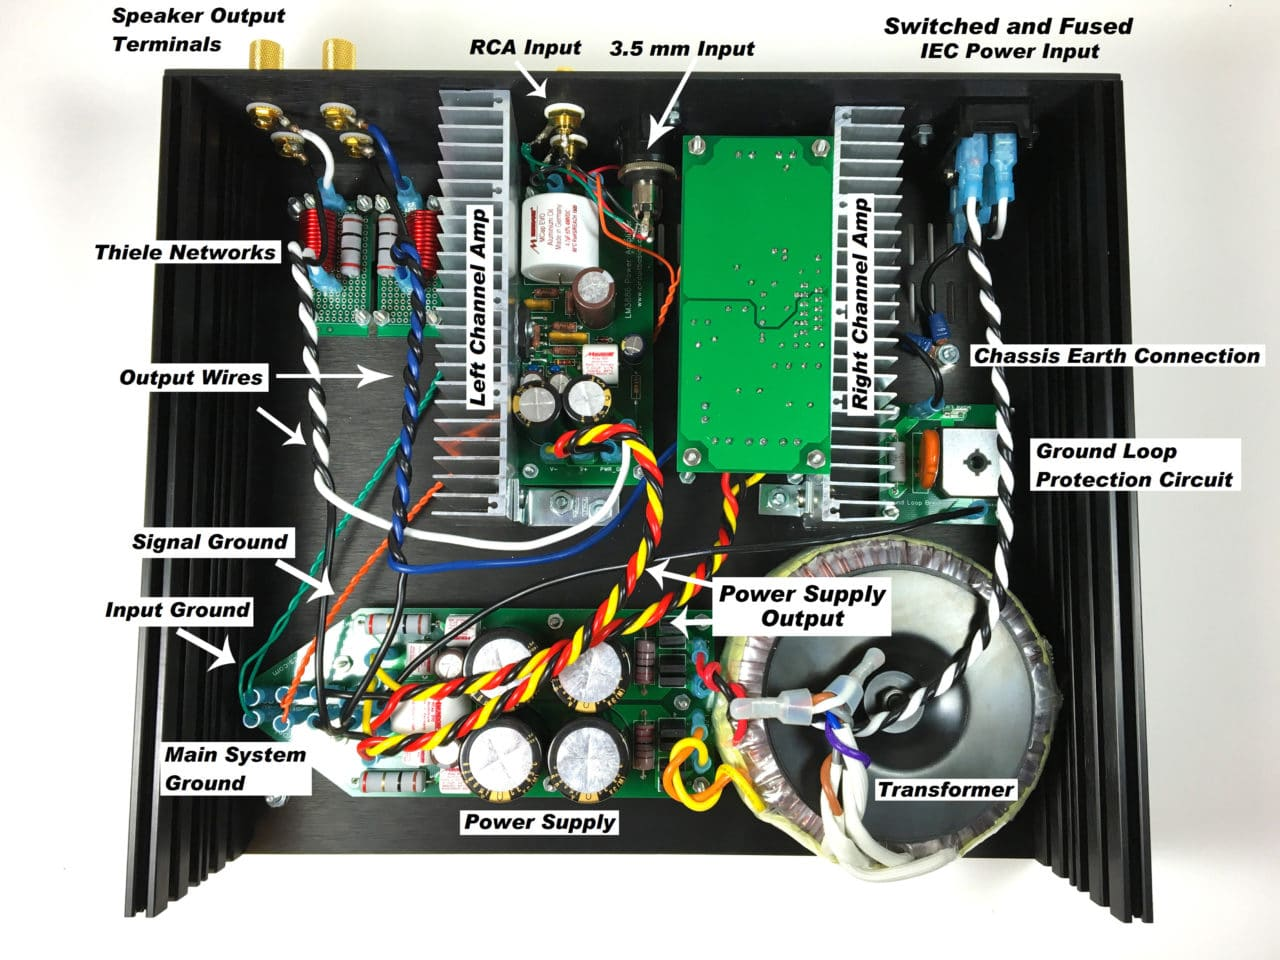 Lowpower Amplifier With Digital Volume Control Amp Circuit Diagram A Complete Guide To Design And Build Hi Fi Lm3886 Board Is Close The Rca 35 Mm Input Terminals In This Arrangement Heat Sinks Provide Some Shielding From Thiele Networks Ac